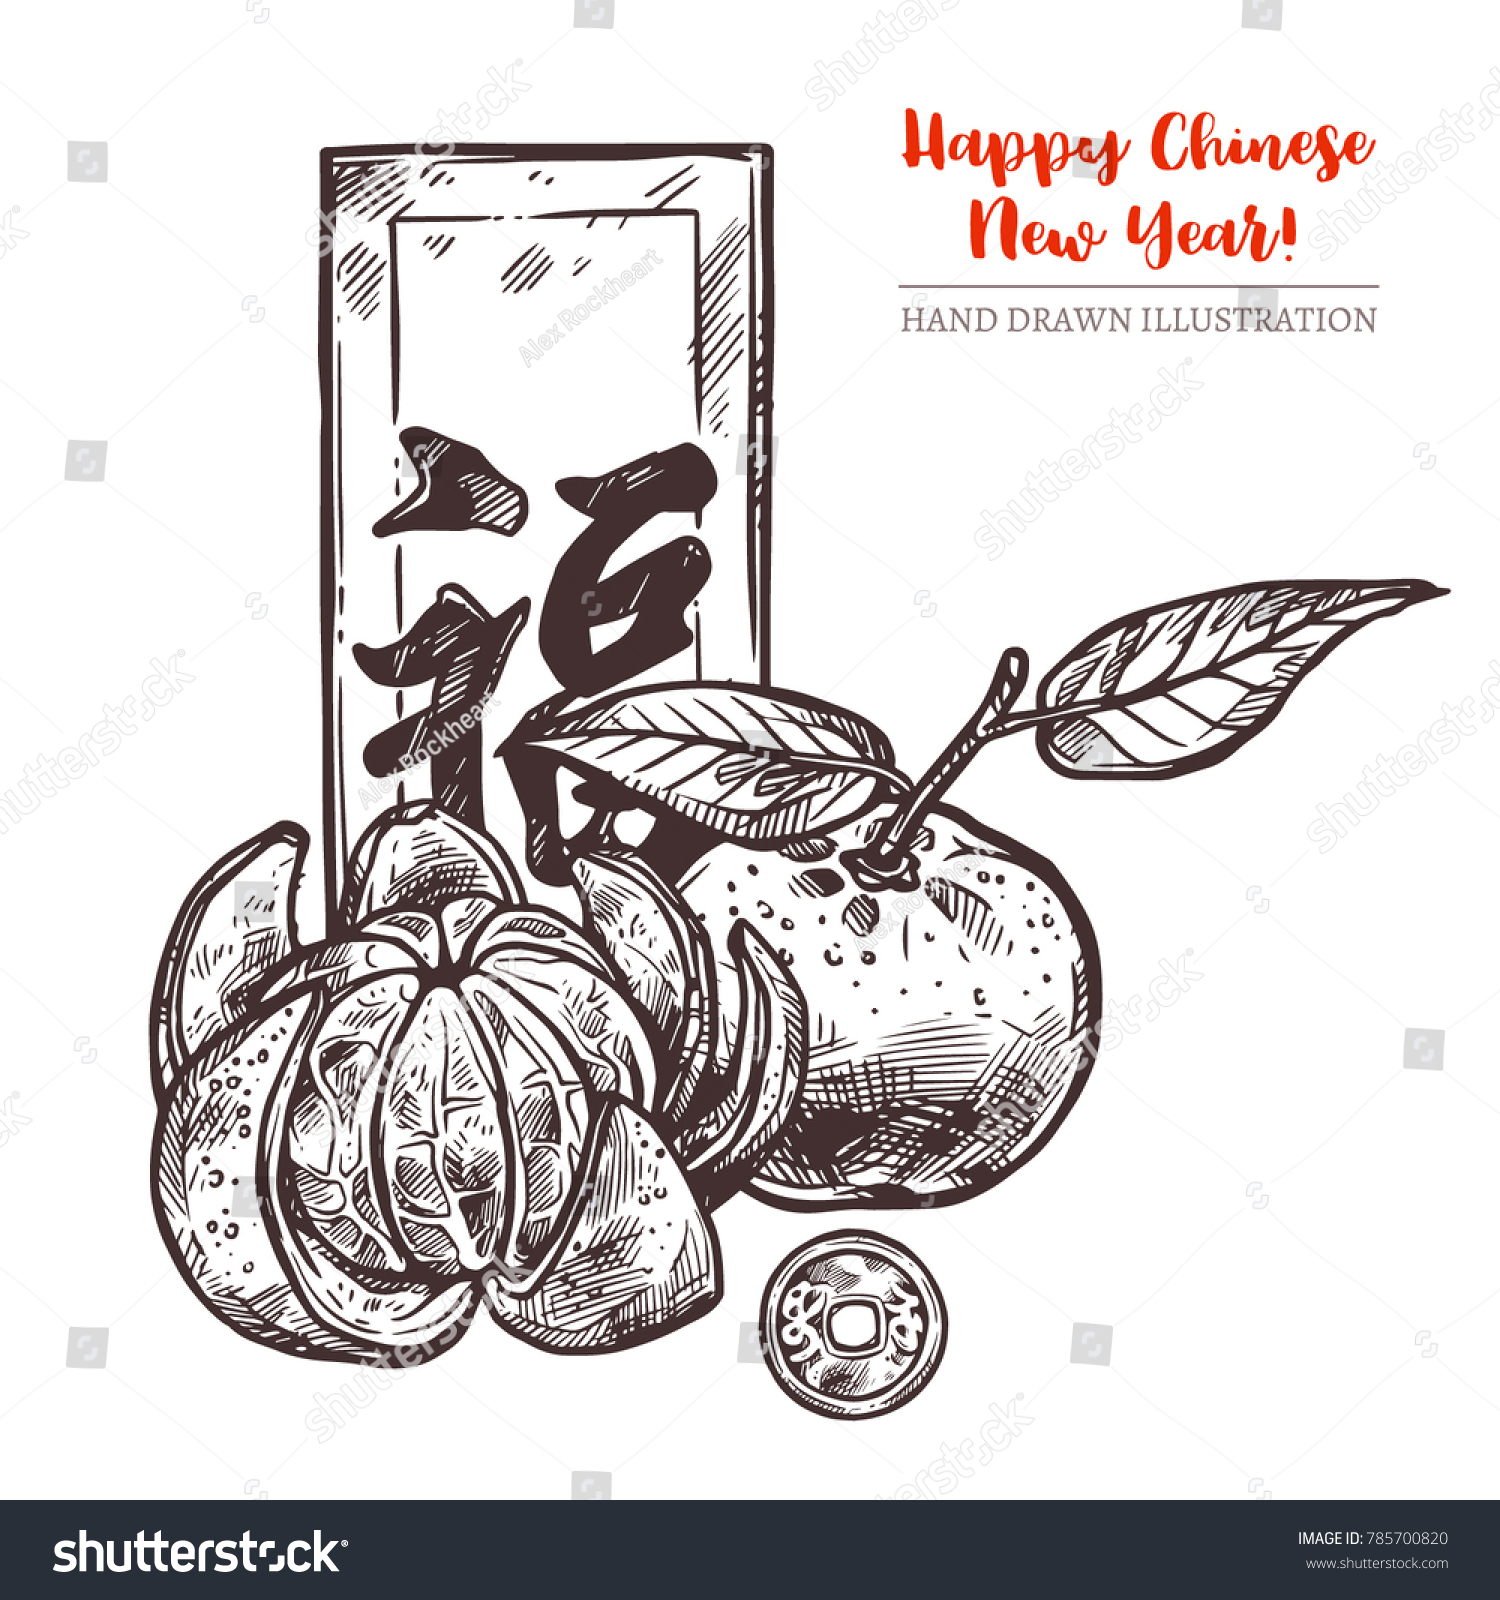 Happy Chinese Lunar New Year Sketch Greeting Card With Symbols Of Fortune Luck Wealth